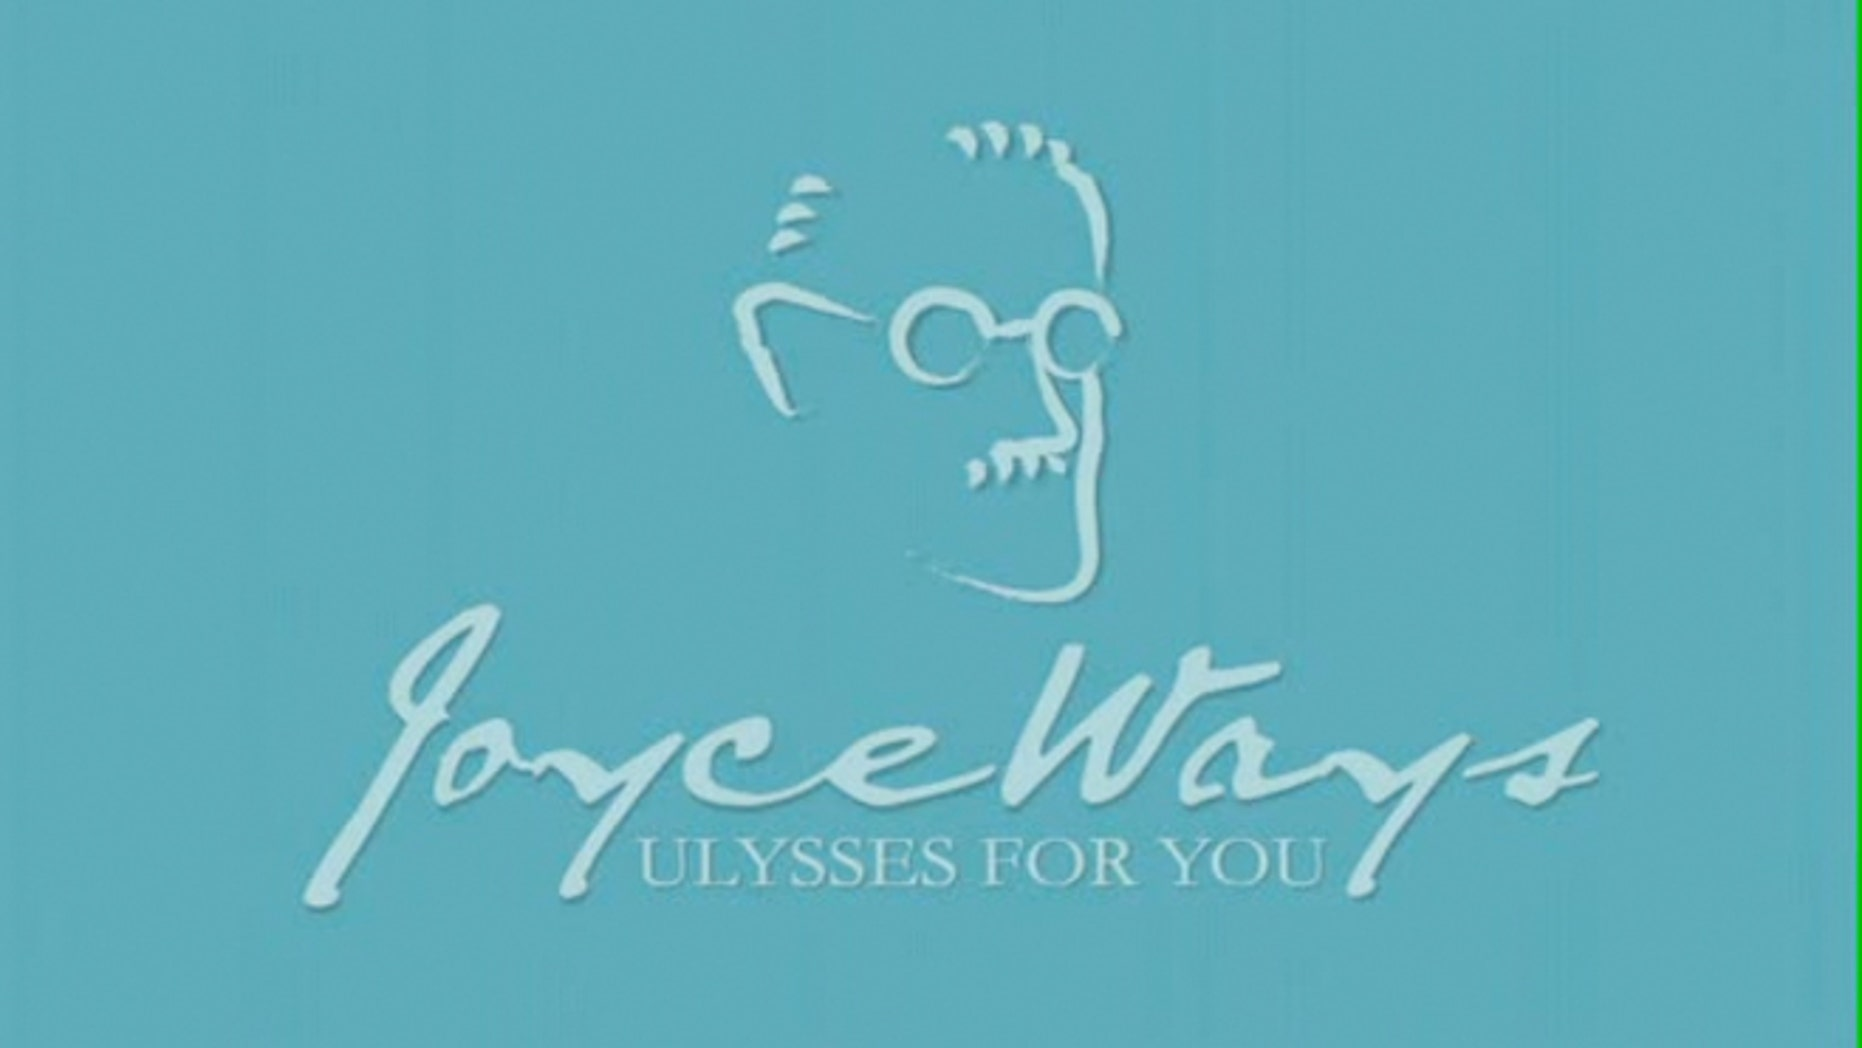 Joyceways allows you to follow in the footsteps of Leopold Bloom, Stephan Daedalus and other Joycean favorites with a new app celebrating the Ulysses adventure.